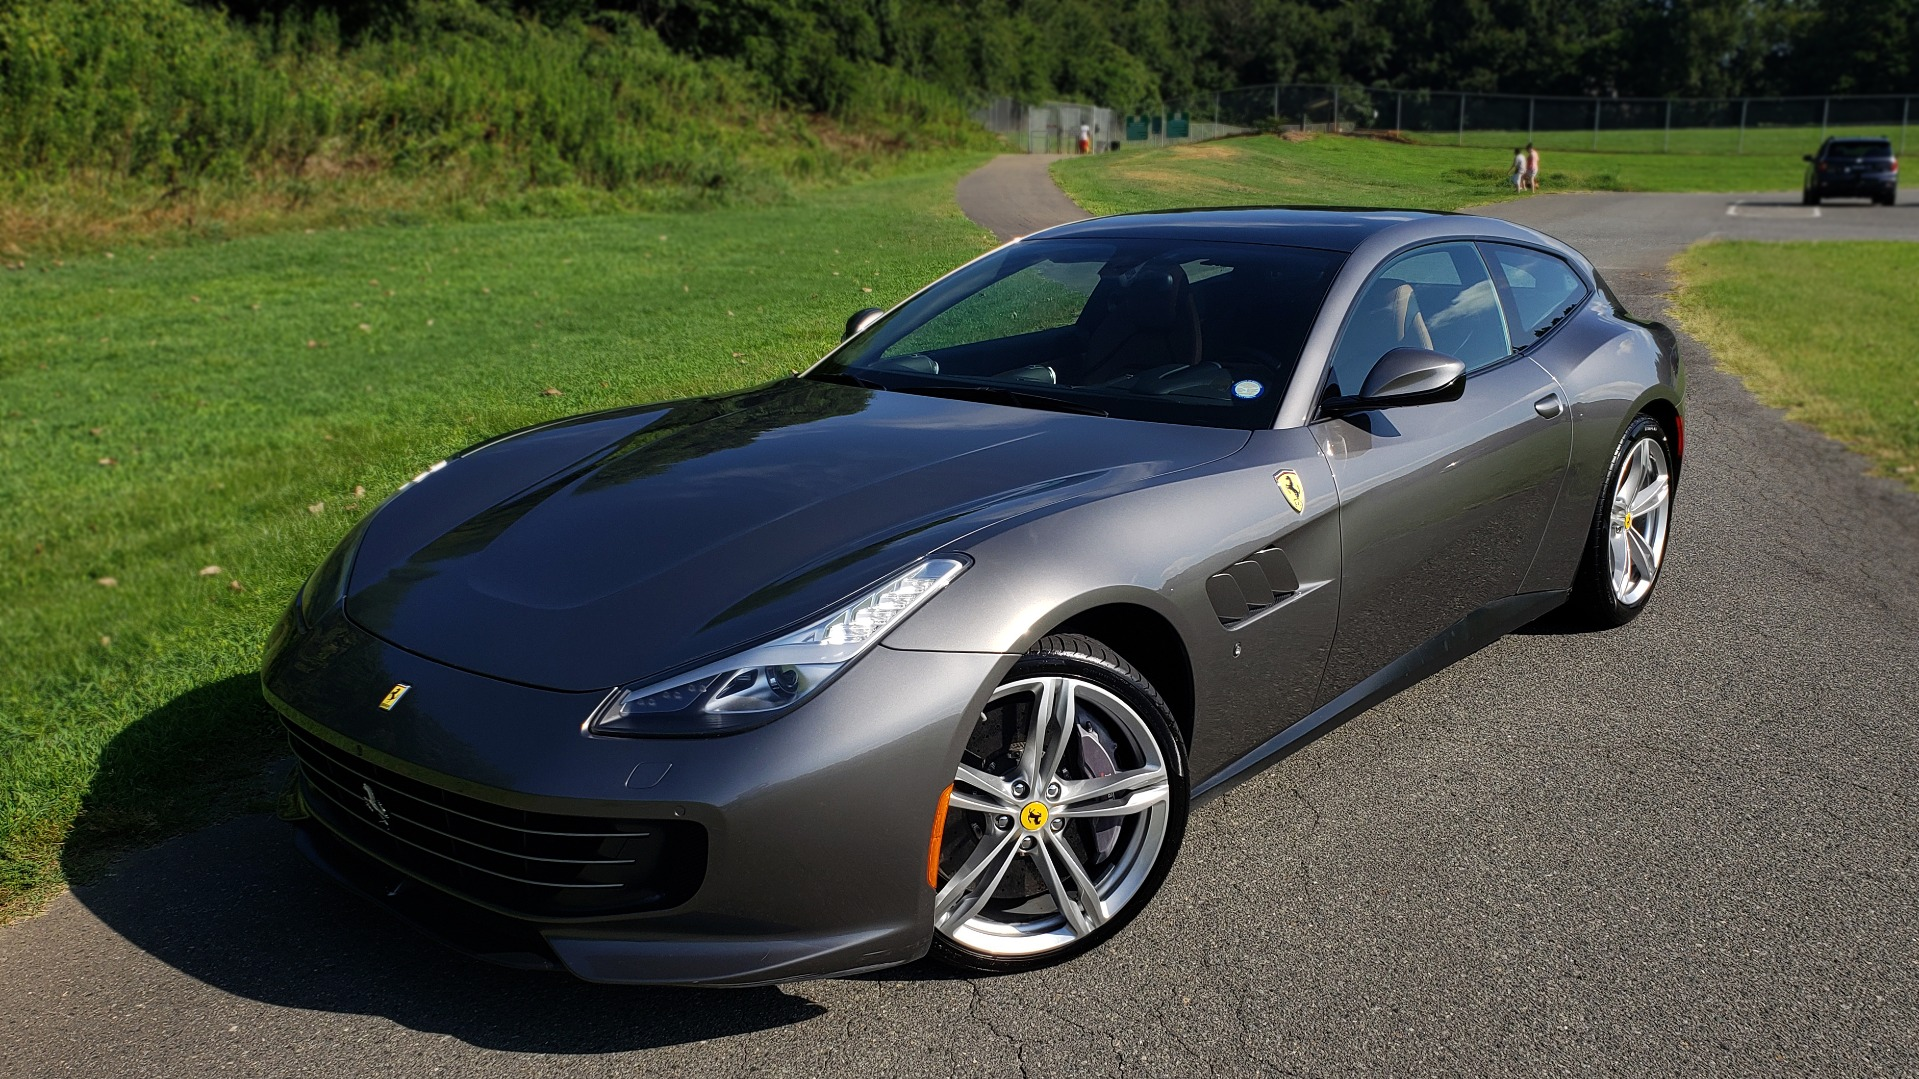 Used 2017 Ferrari GTC4 LUSSO AWD / PANO-ROOF / APPLE CAR PLAY / SUSP LIFT / JBL SOUND for sale $188,999 at Formula Imports in Charlotte NC 28227 2